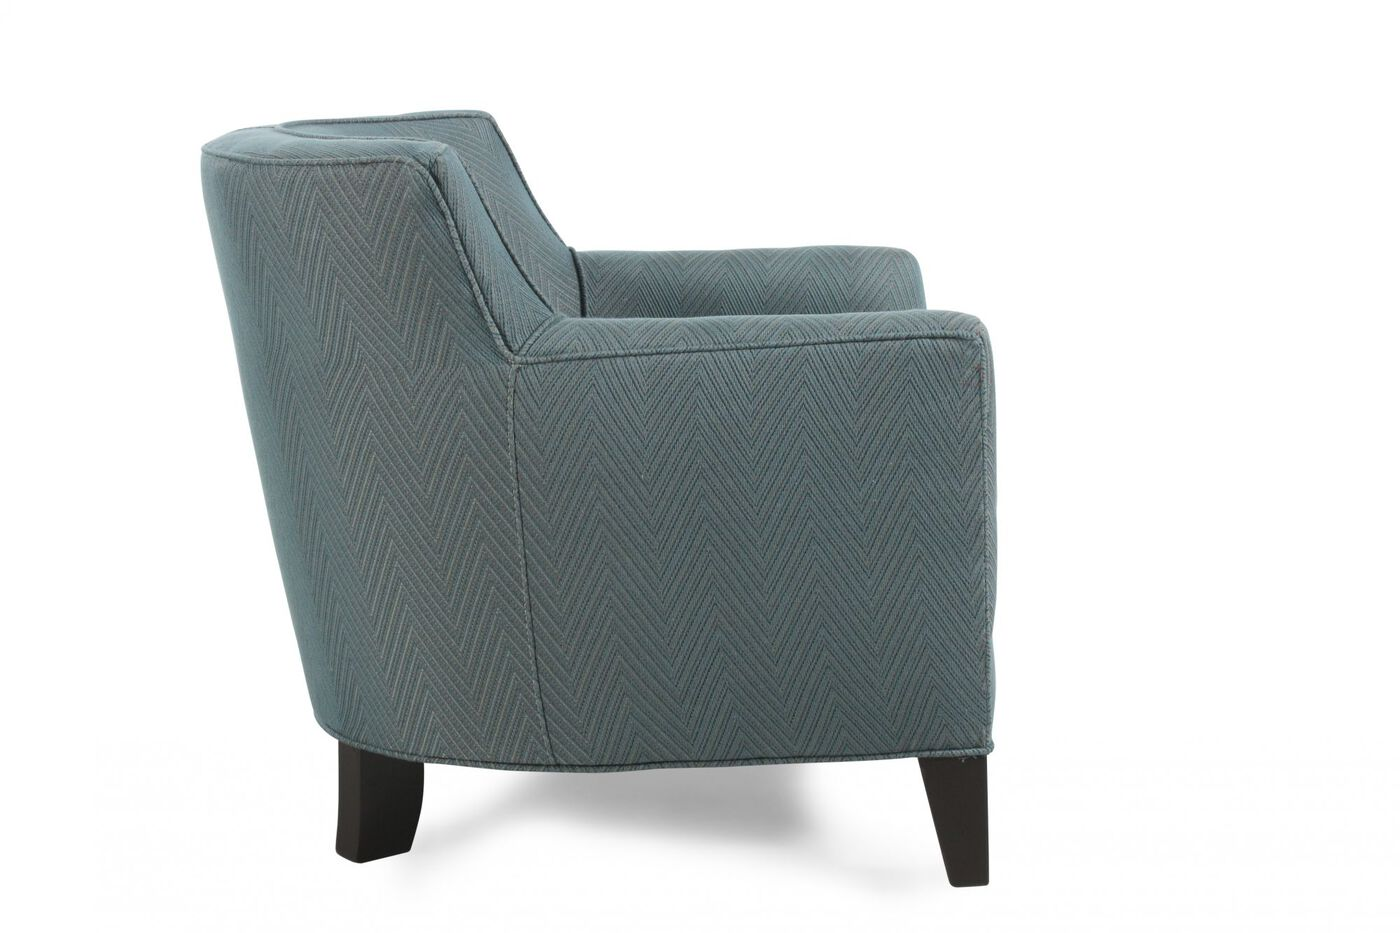 Button Tufted Herringbone Accent Chair In Teal Mathis